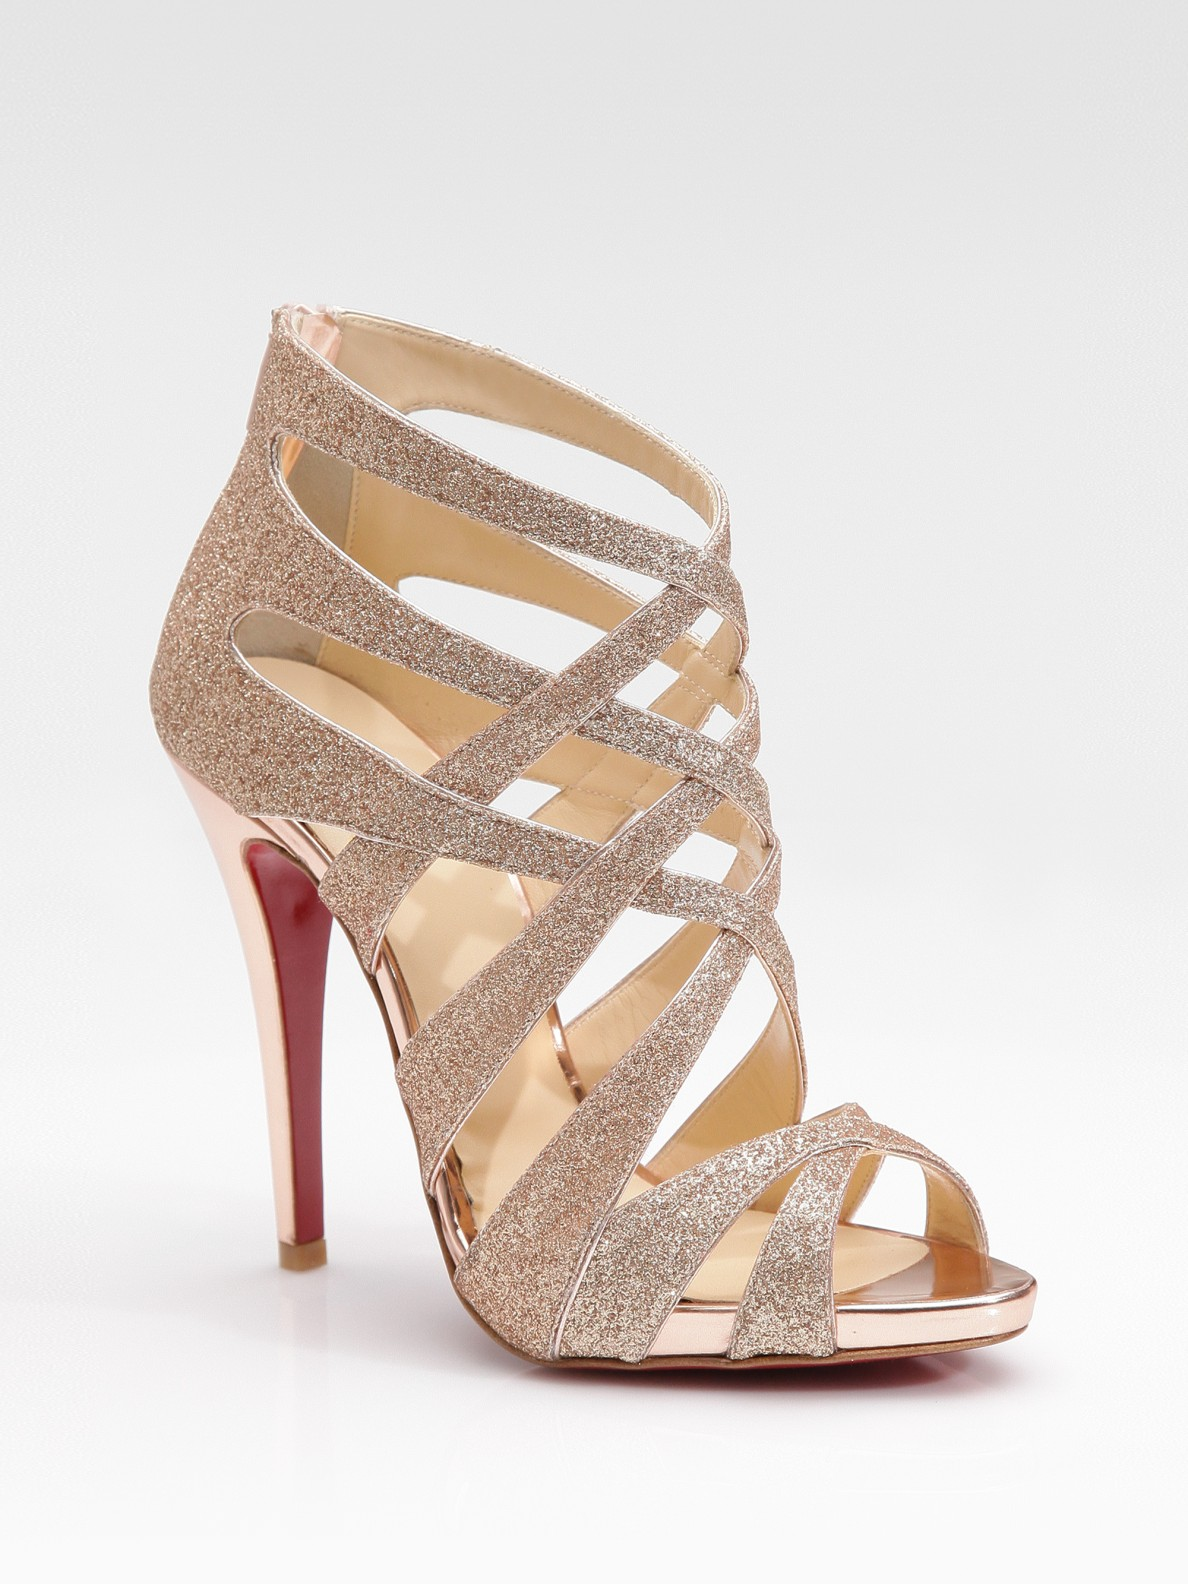 christian louboutin gold strappy sandals